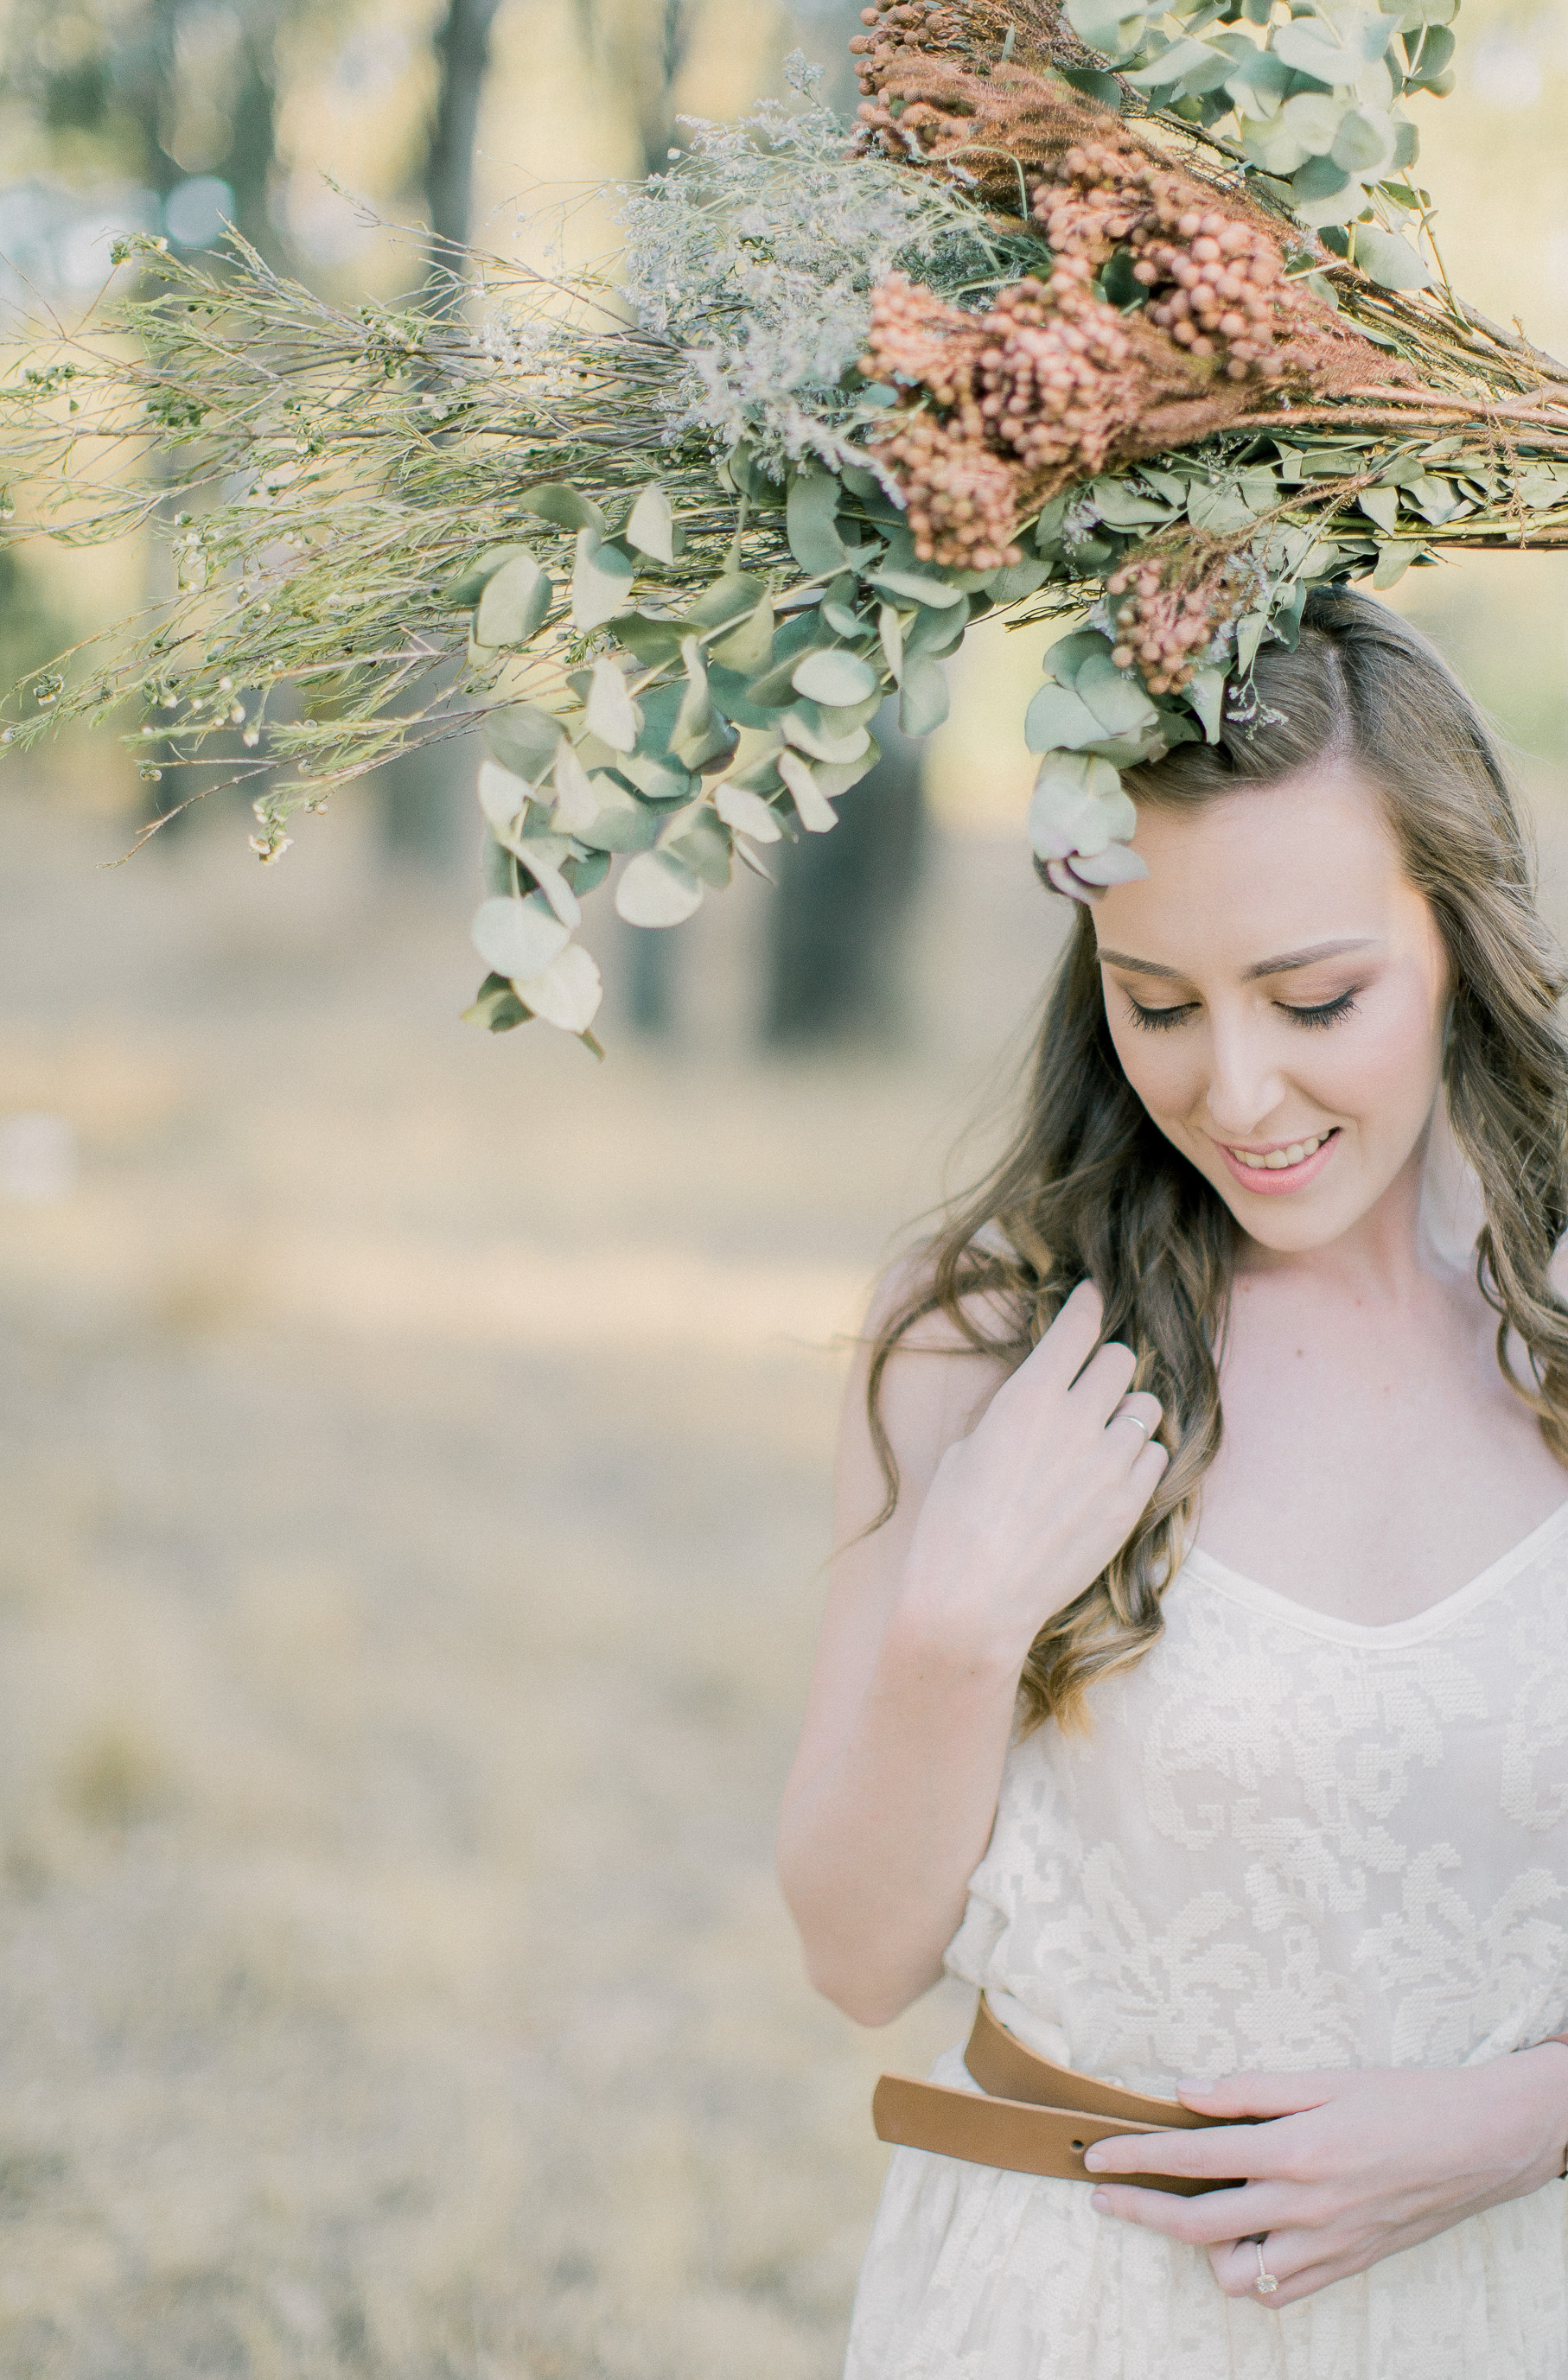 gauteng wedding photographer clareece smit_027.jpg